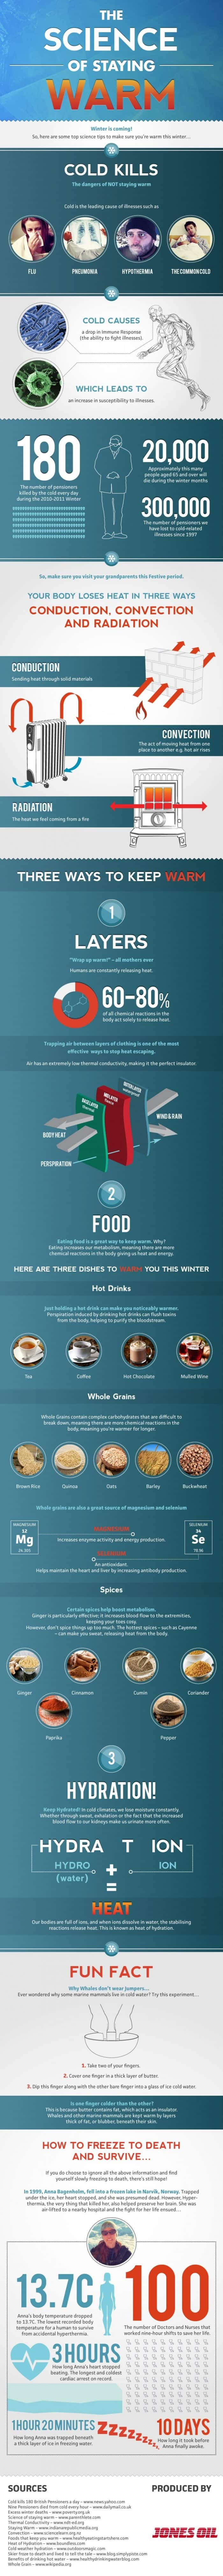 Science of Staying Warm Infographic